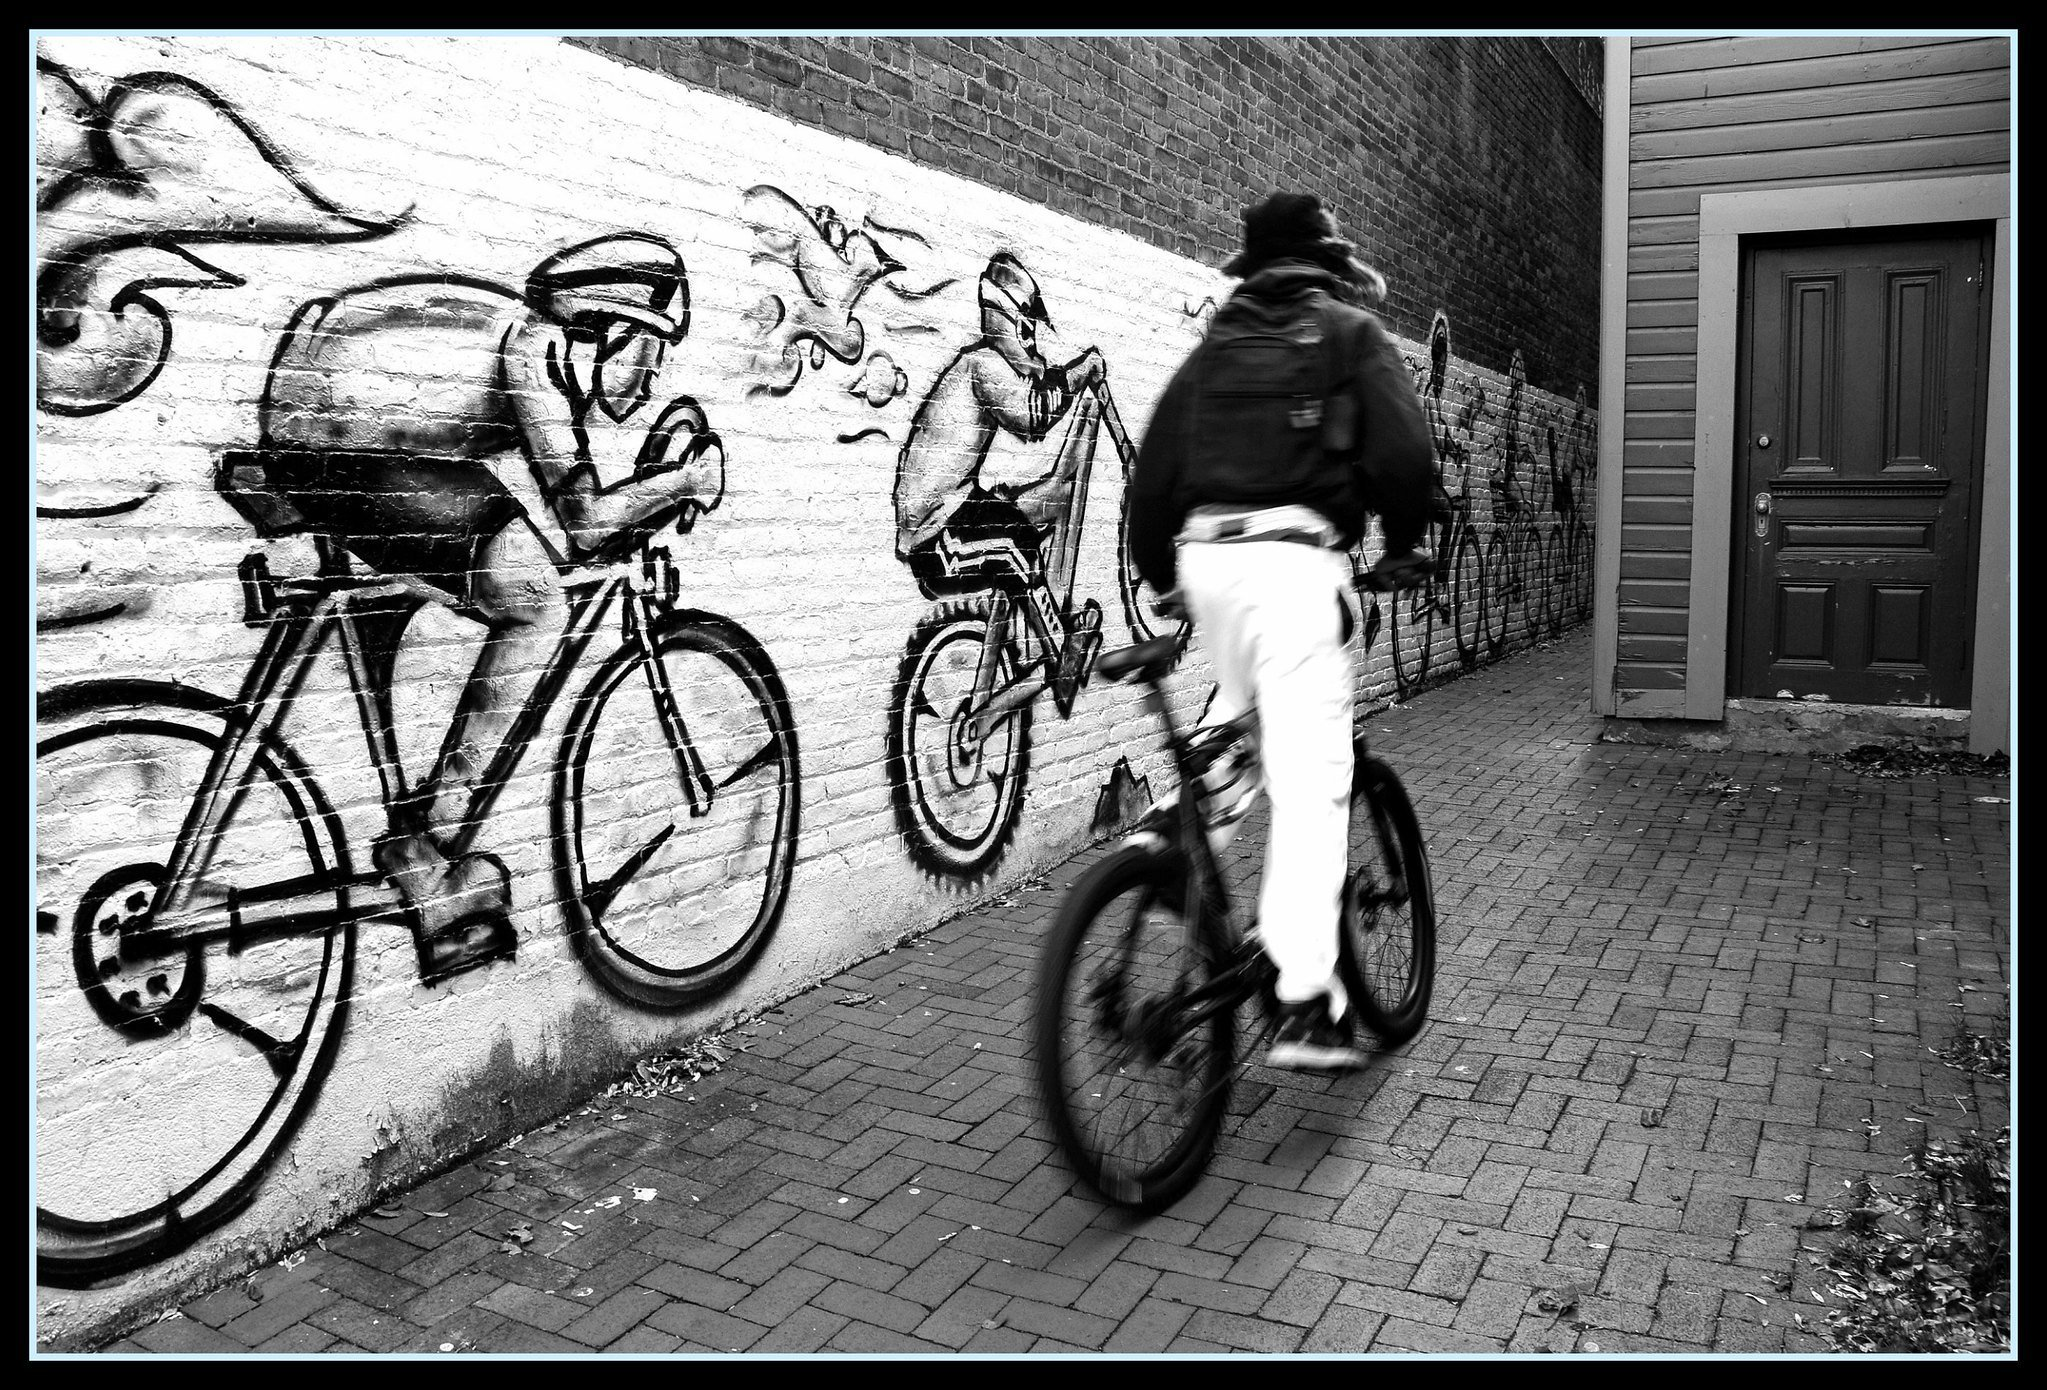 Someone biking down an alley with a mural of bikers in the background.